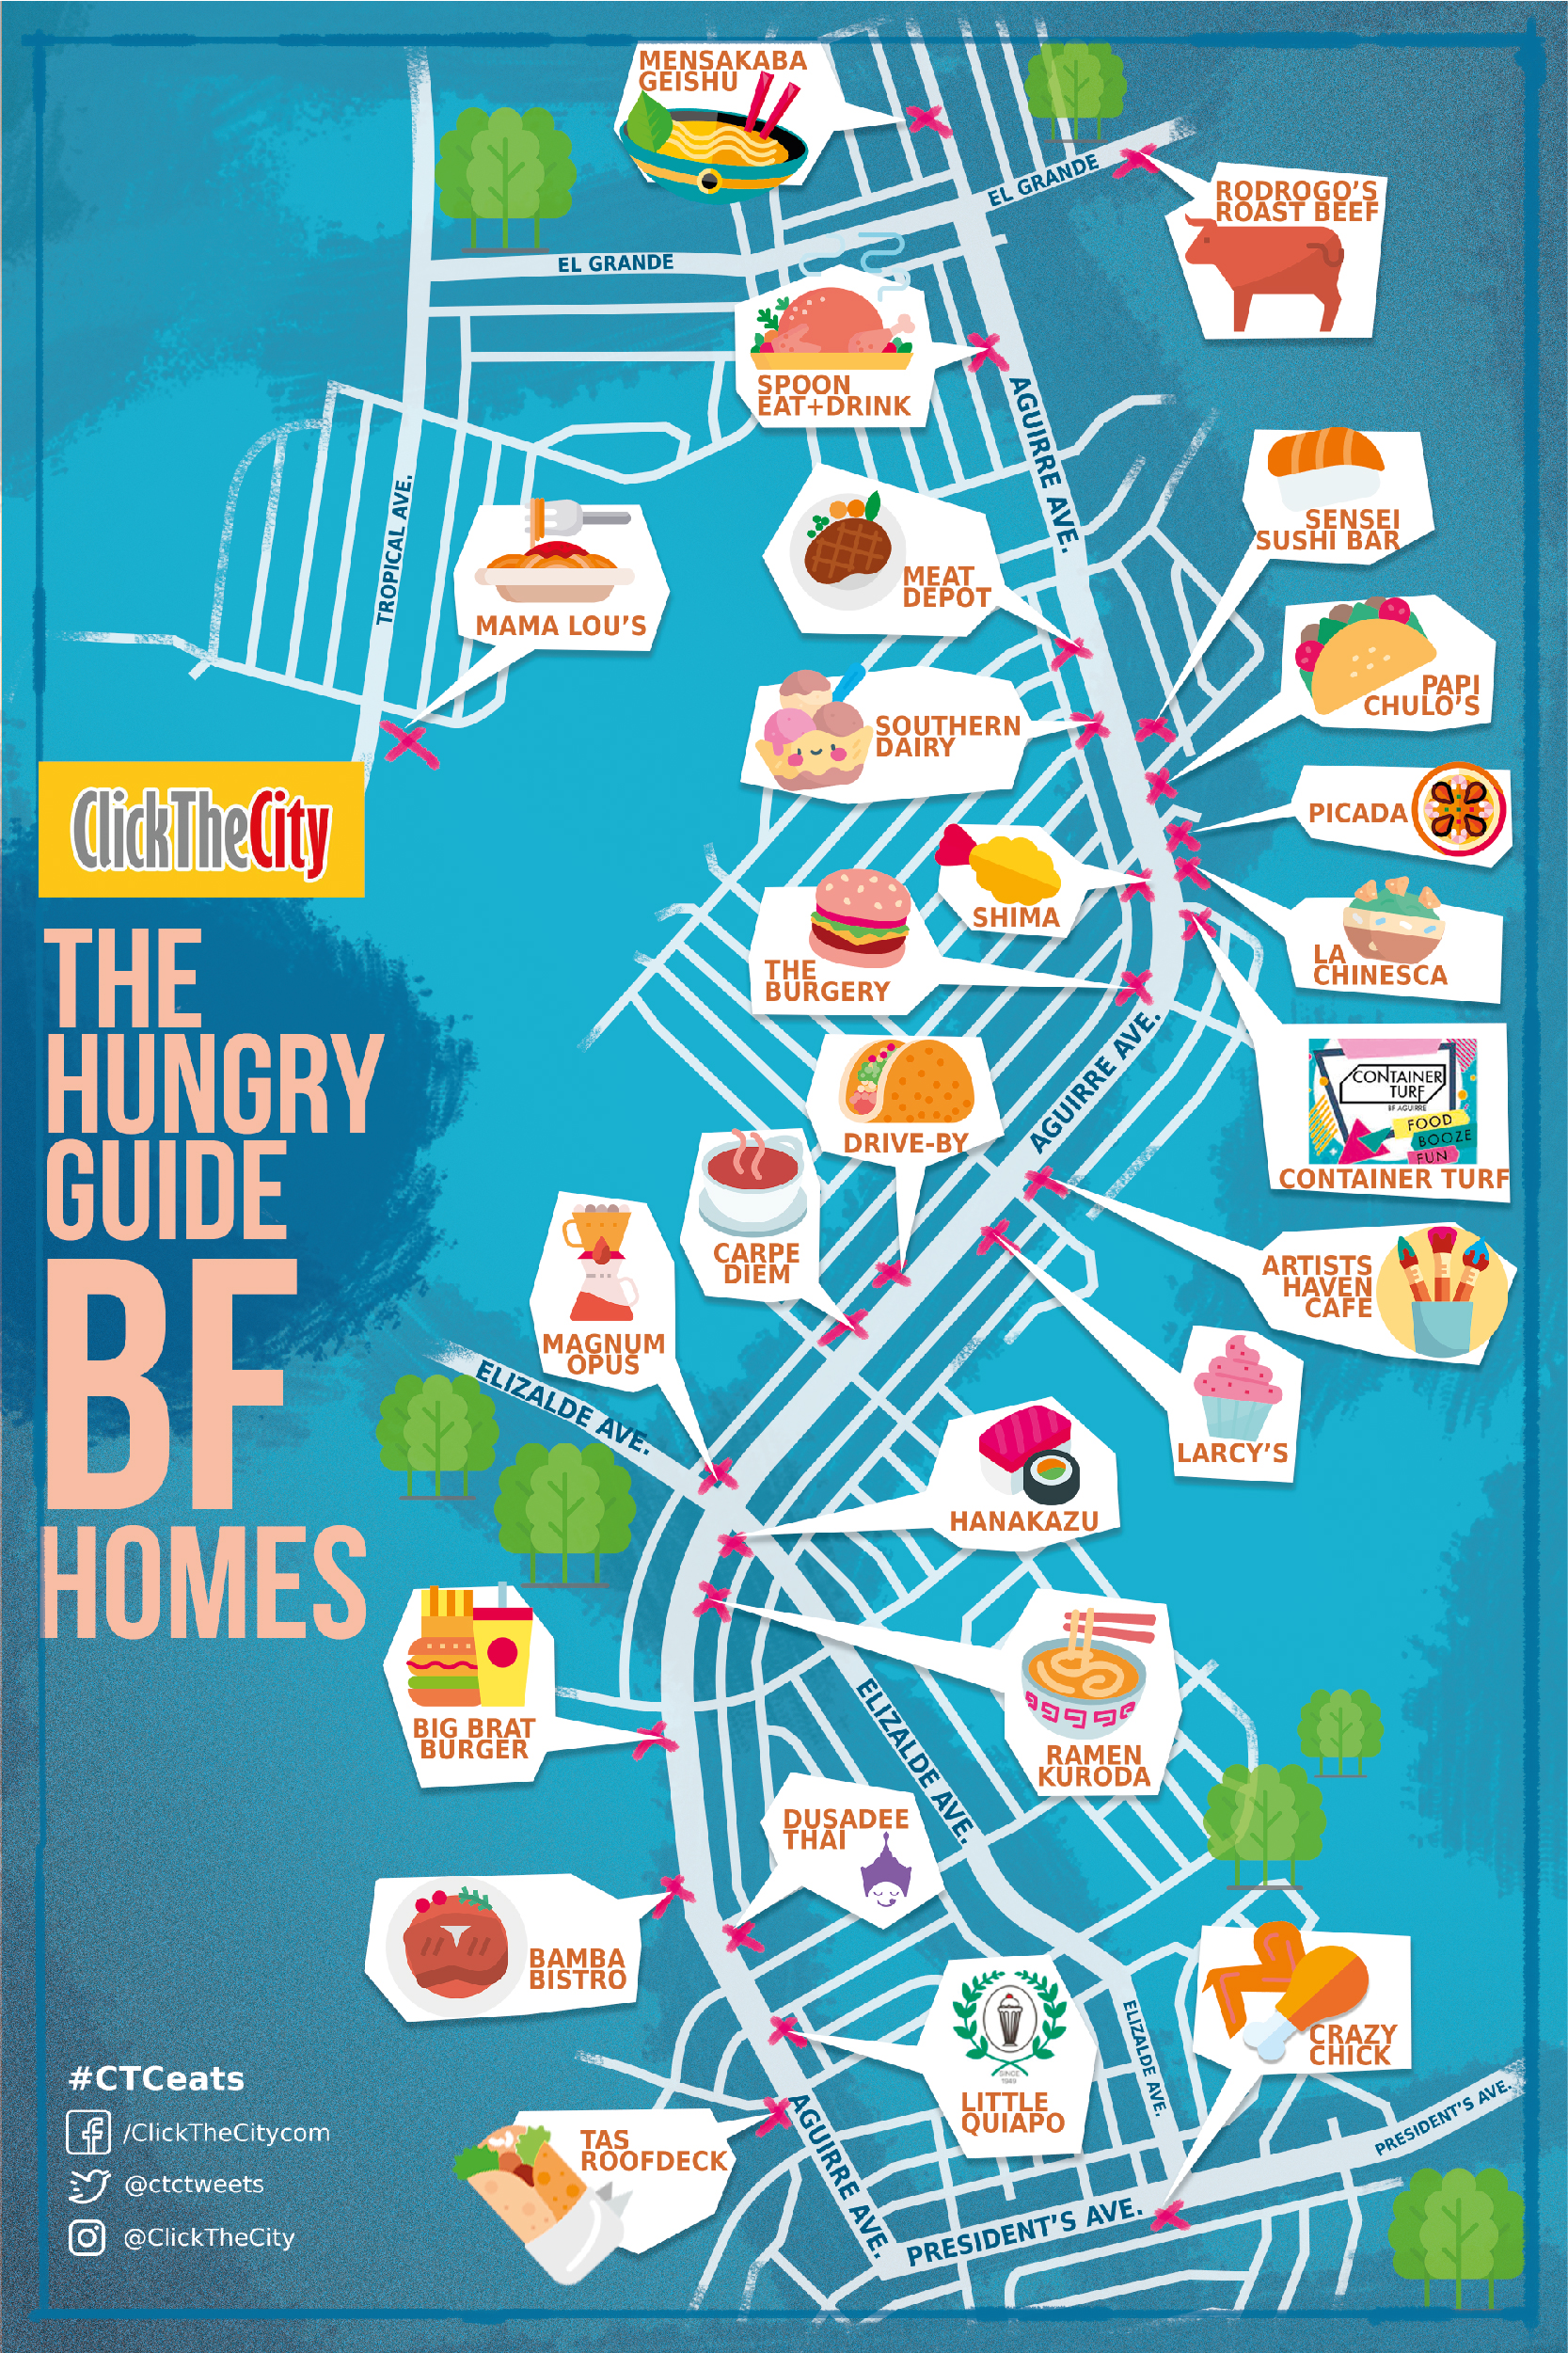 The Hungry Guide Click The City BF Homes Paranaque